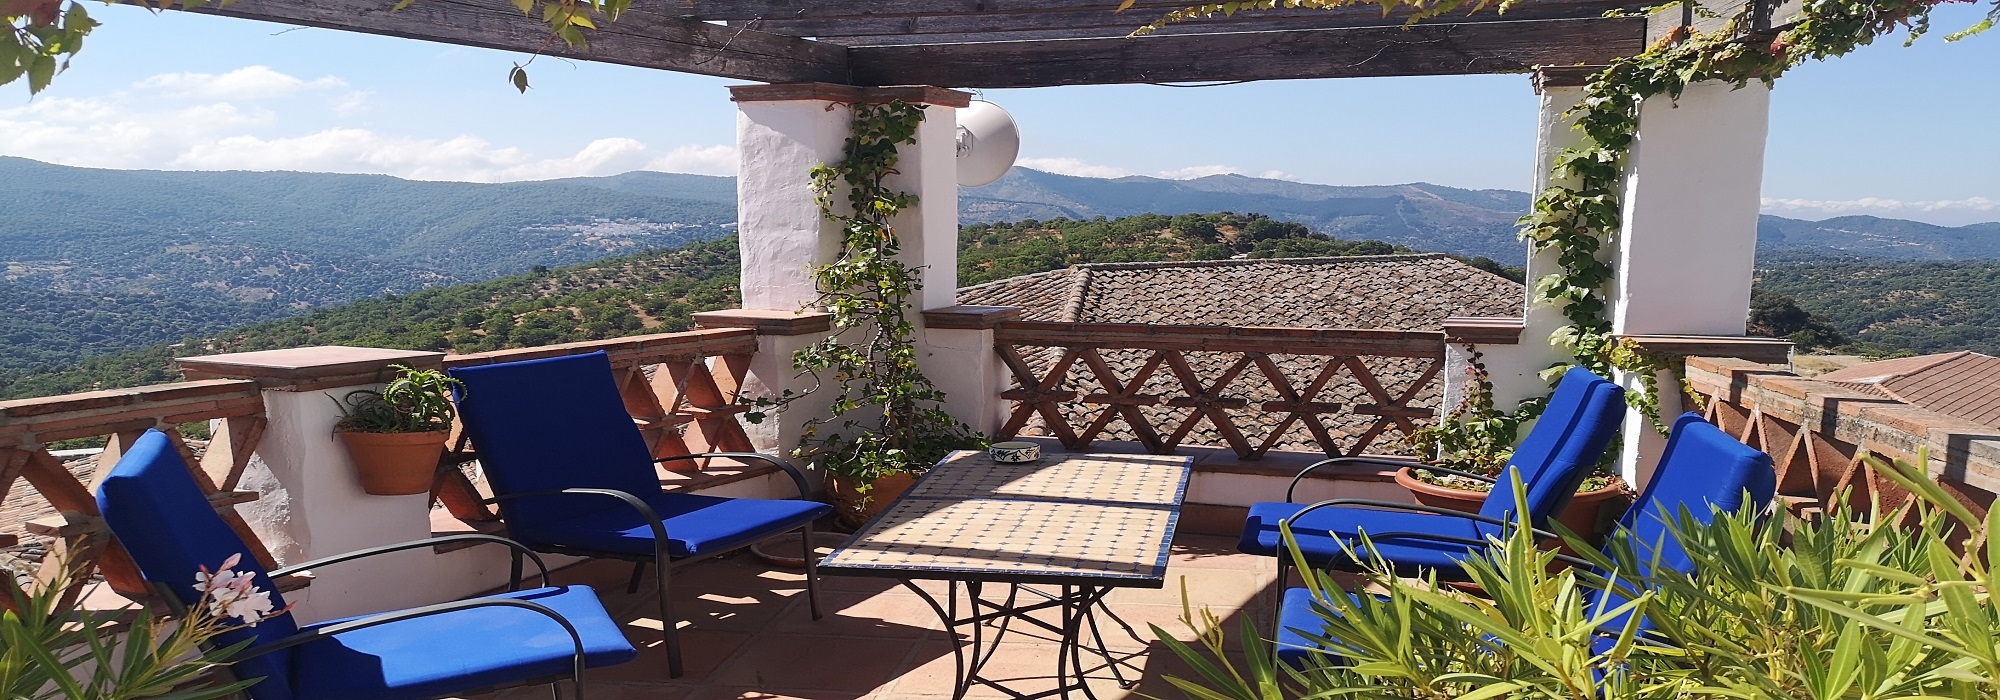 Rural Boutique Hotel, 8 Beds, Roof Terrace, Panoramic Views